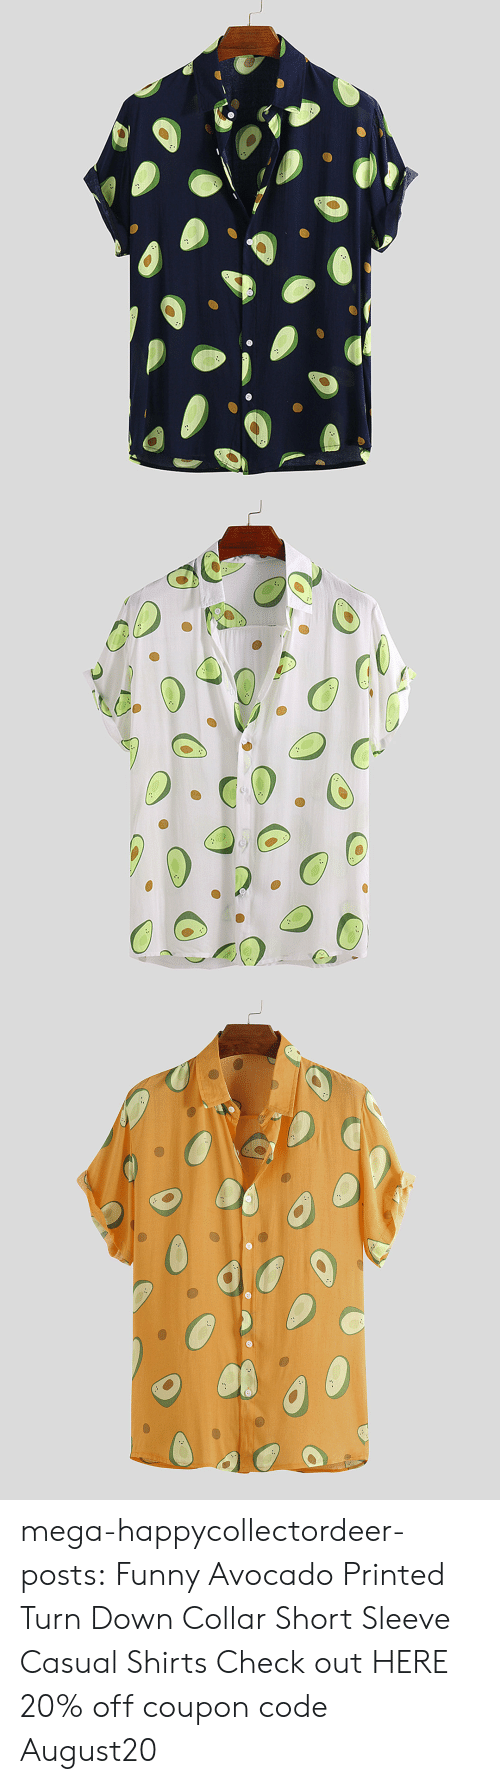 vip: mega-happycollectordeer-posts:   Funny Avocado Printed Turn Down Collar Short Sleeve Casual Shirts   Check out HERE 20% off coupon code:August20